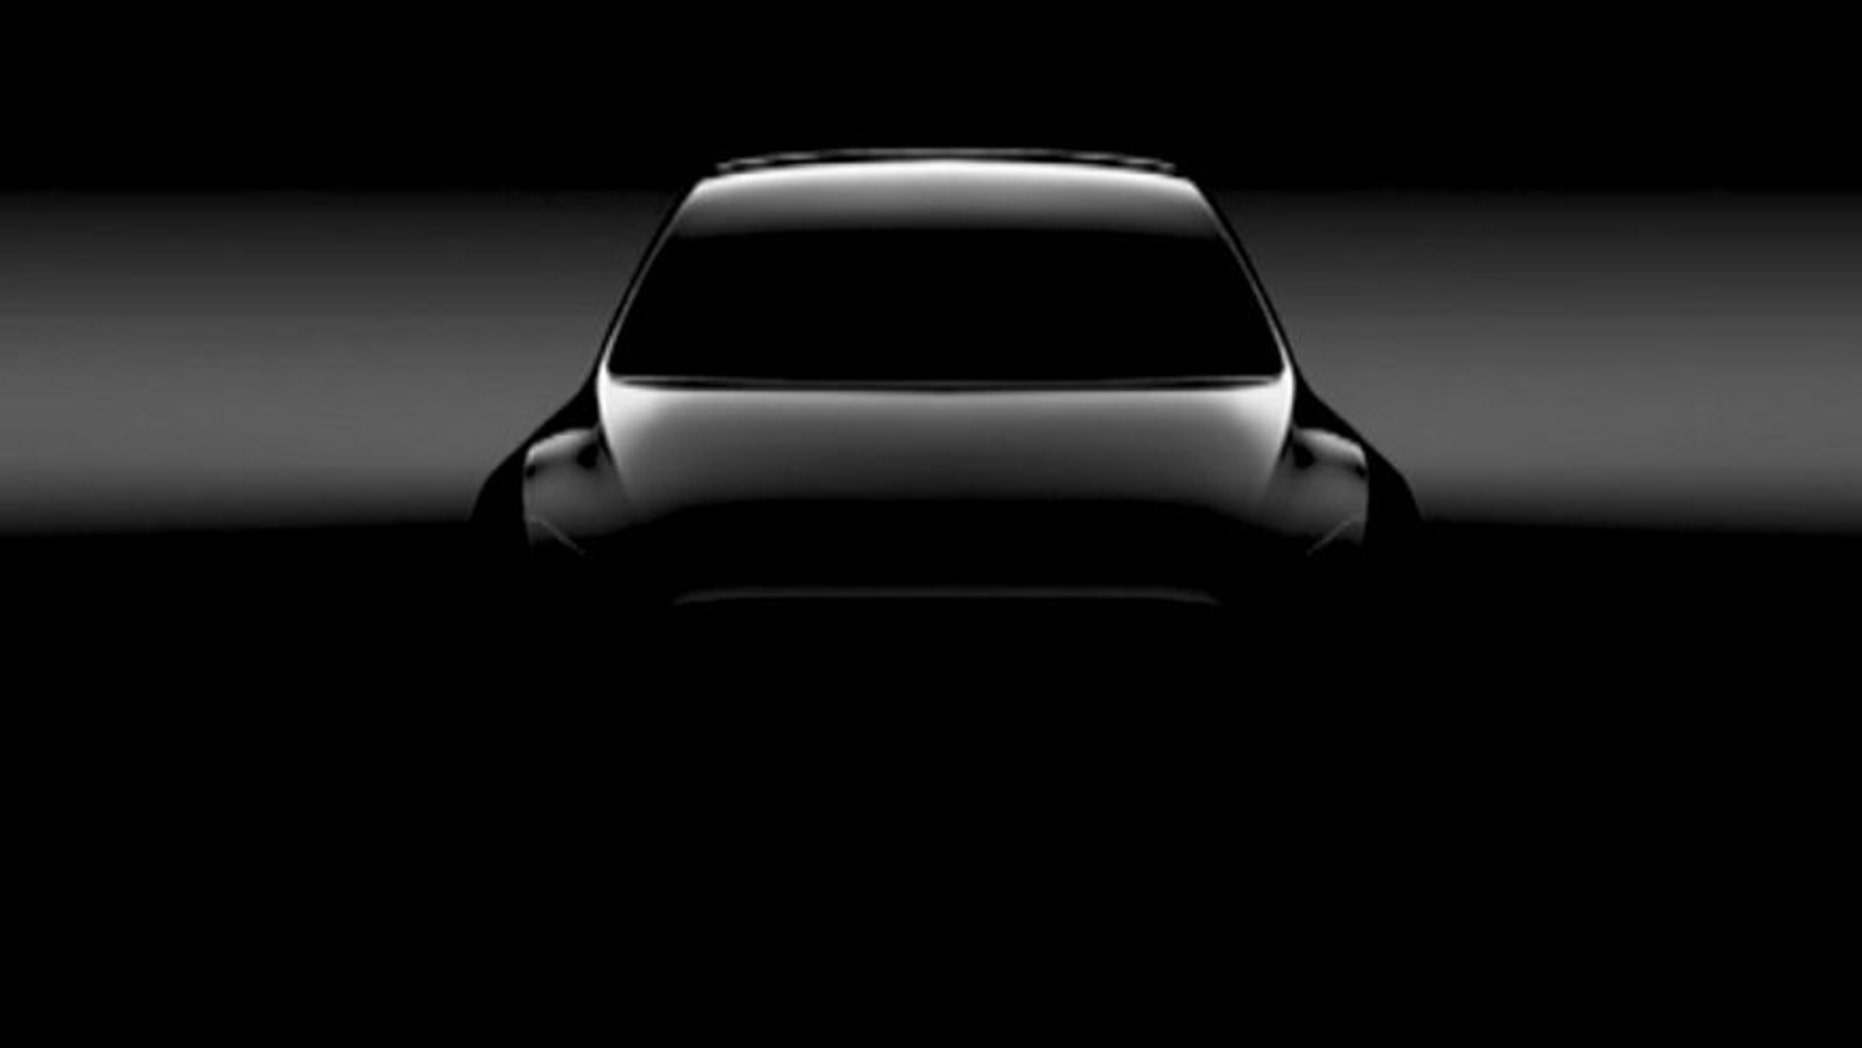 The Tesla Model Y crossover is scheduled to enter production in 2020.